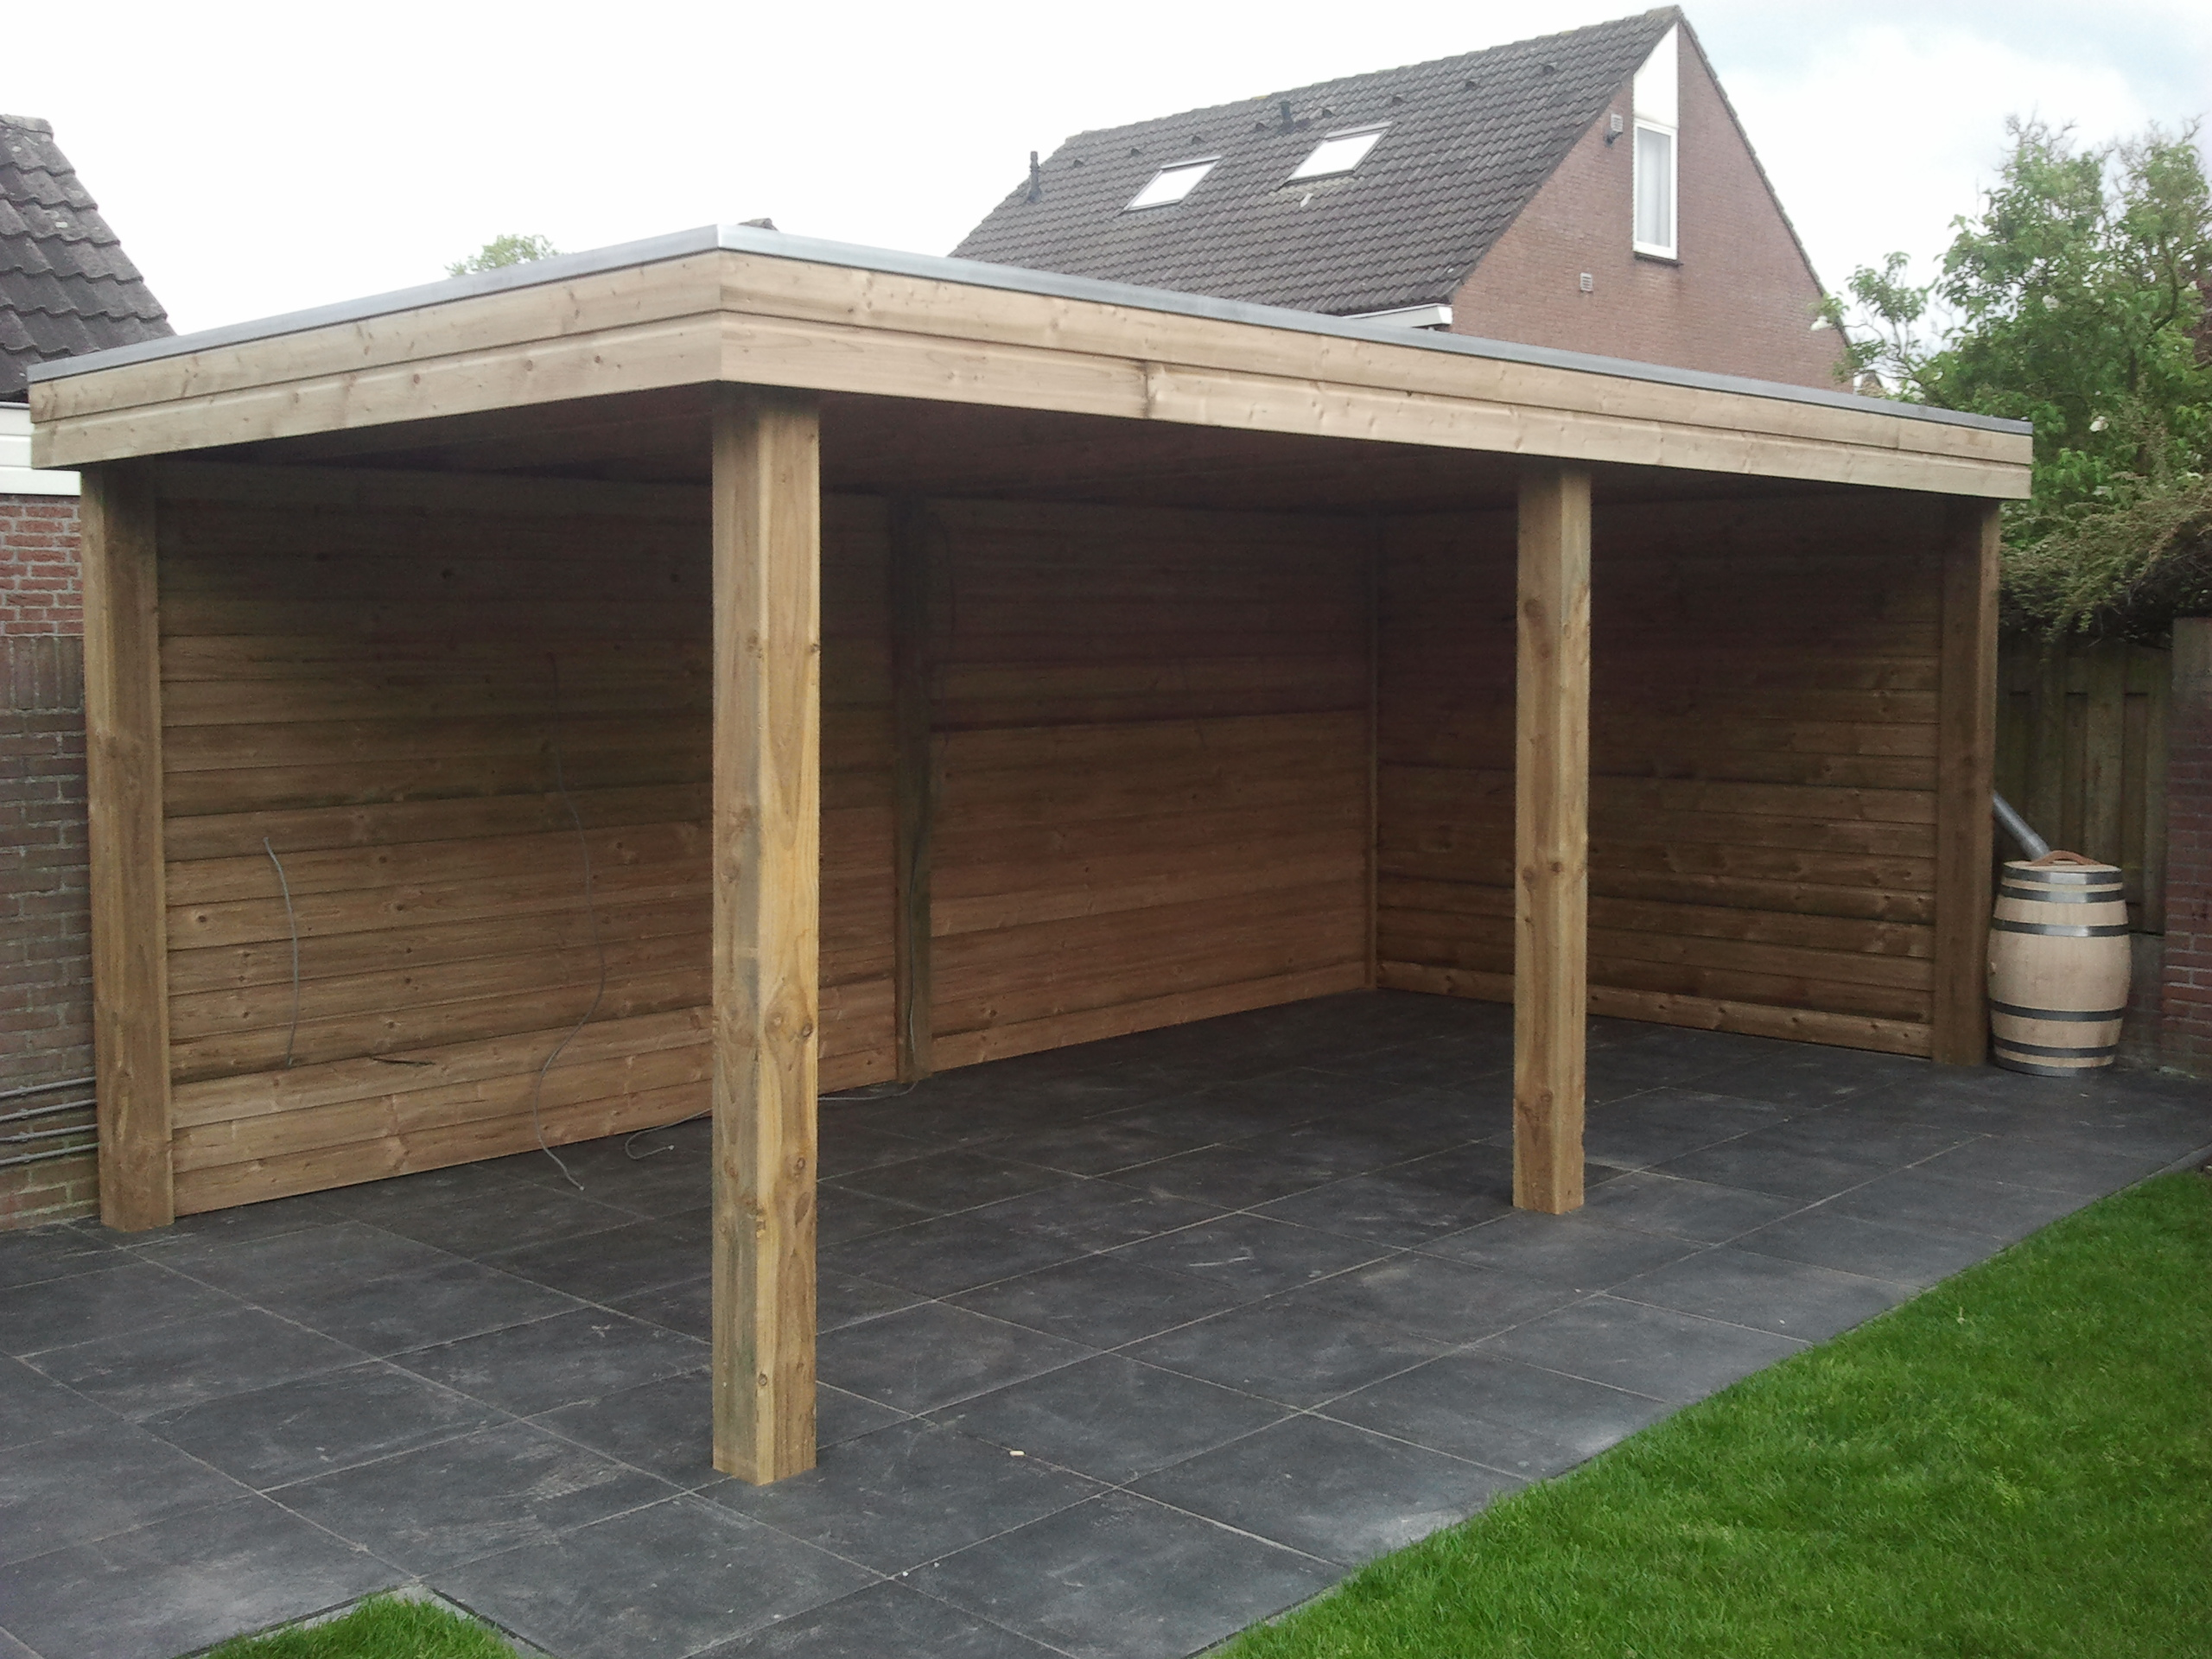 Overkapping Tuin Hout : Tuinhout m hoefnagels